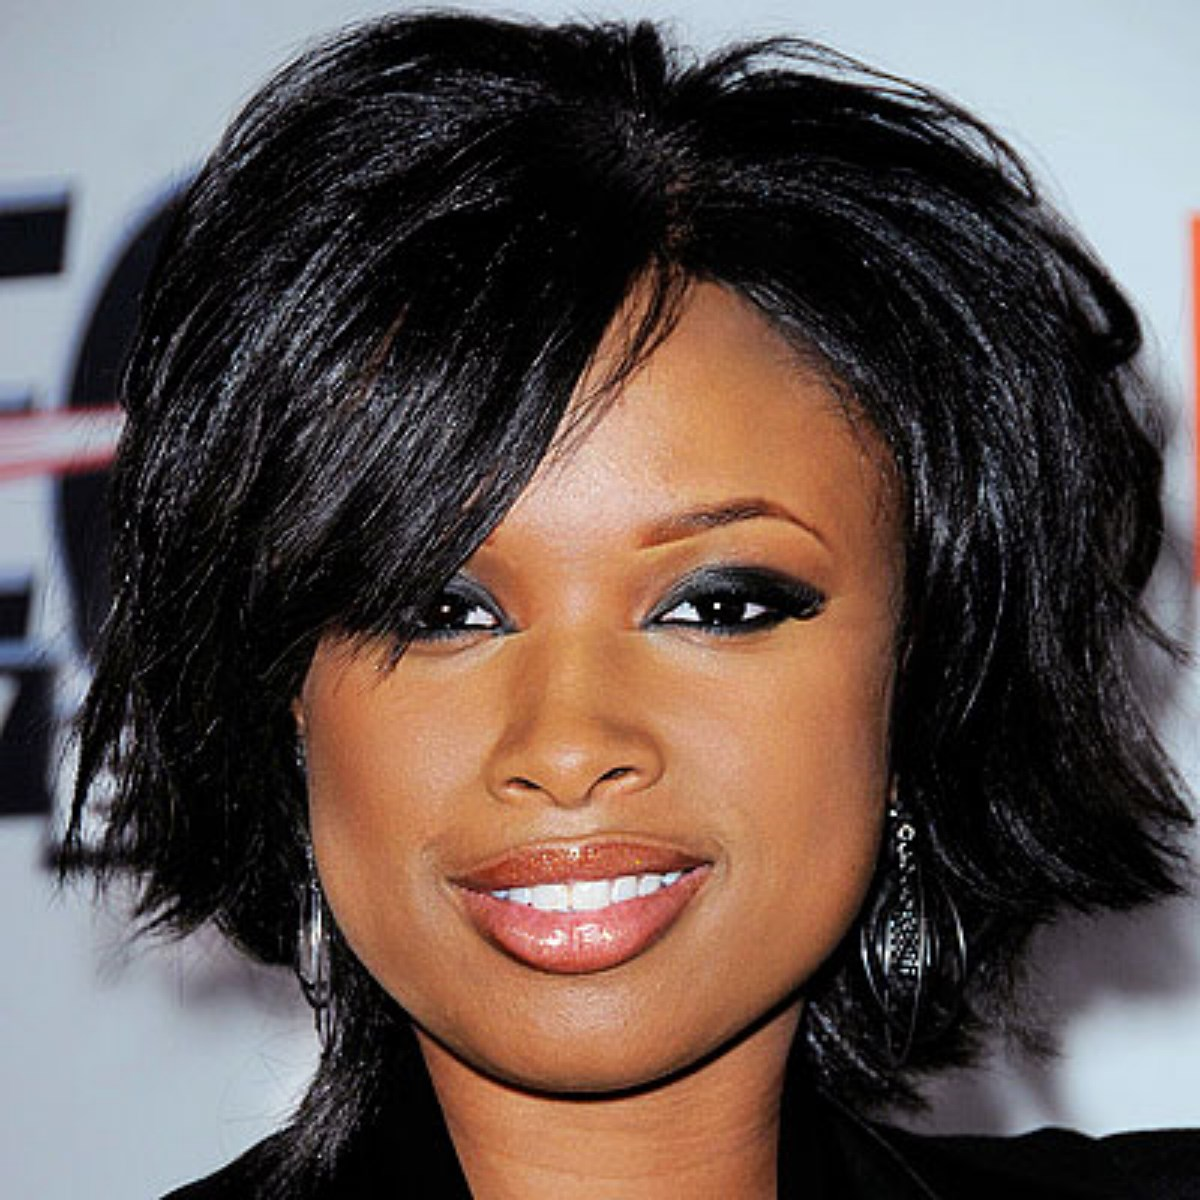 Curly Black Hairstyles for Short Hair